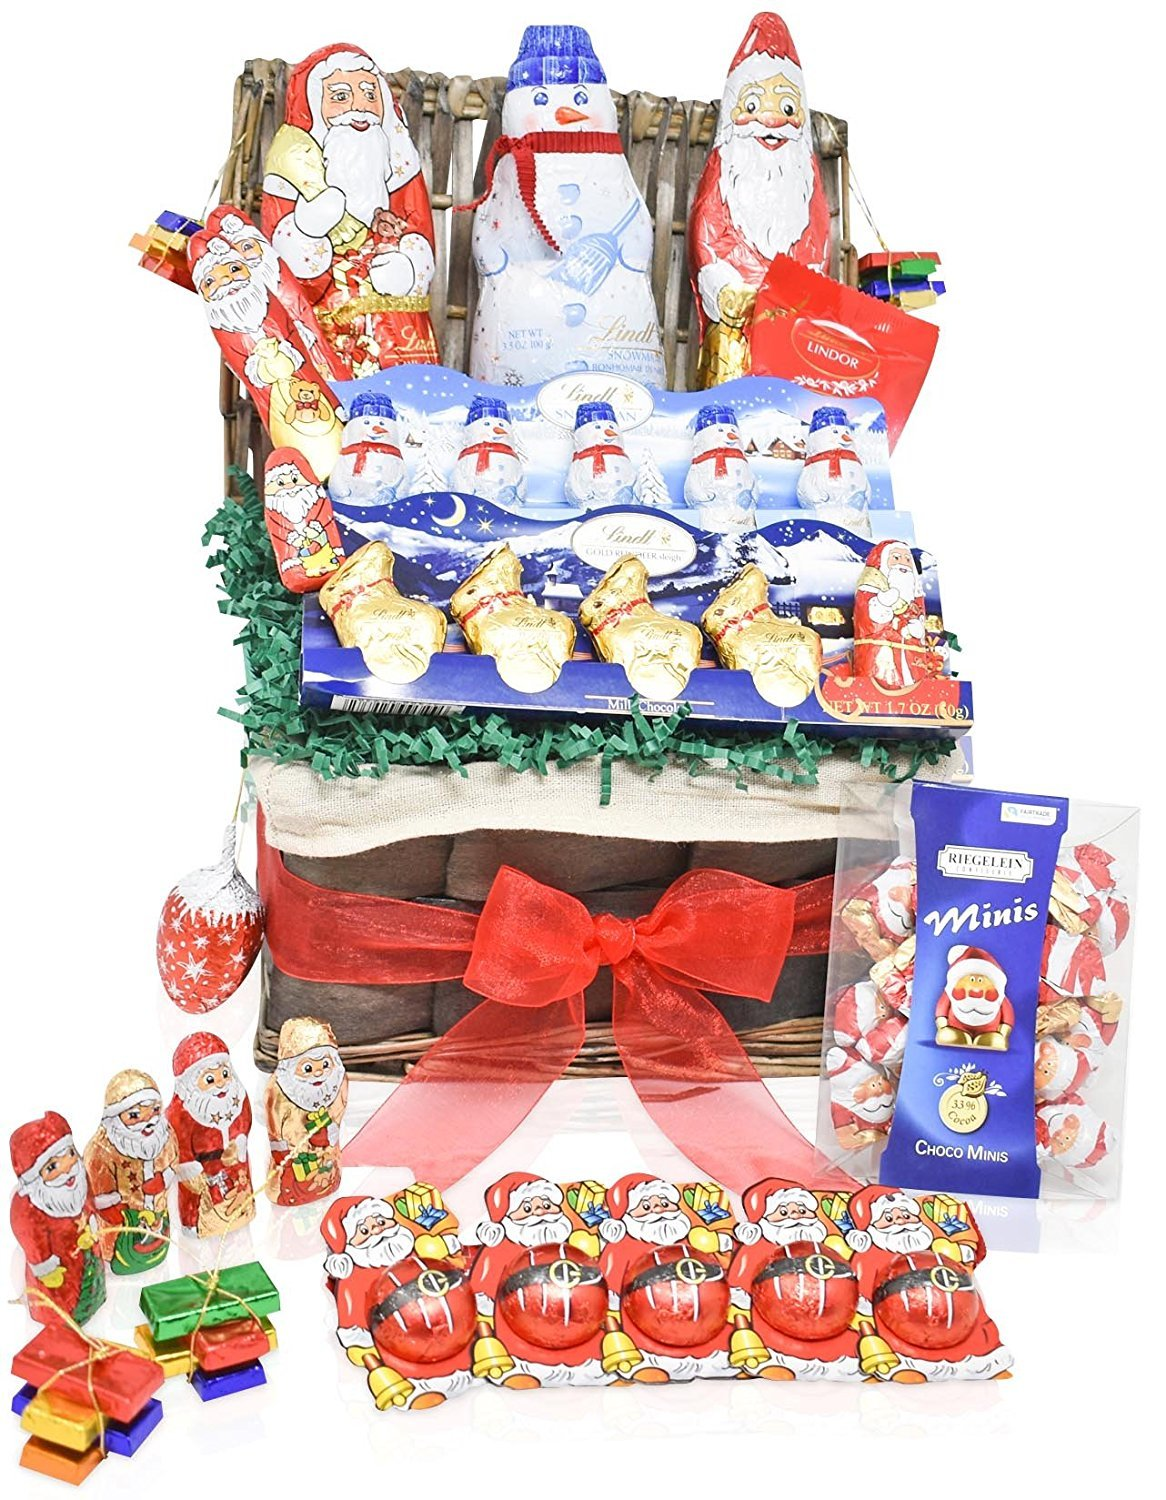 Lindt Valentine S Day Chocolate Variety Gift Basket Lindt Chocolate Specials Mixed Gift Pack For Him And Her Amazon Com Grocery Gourmet Food